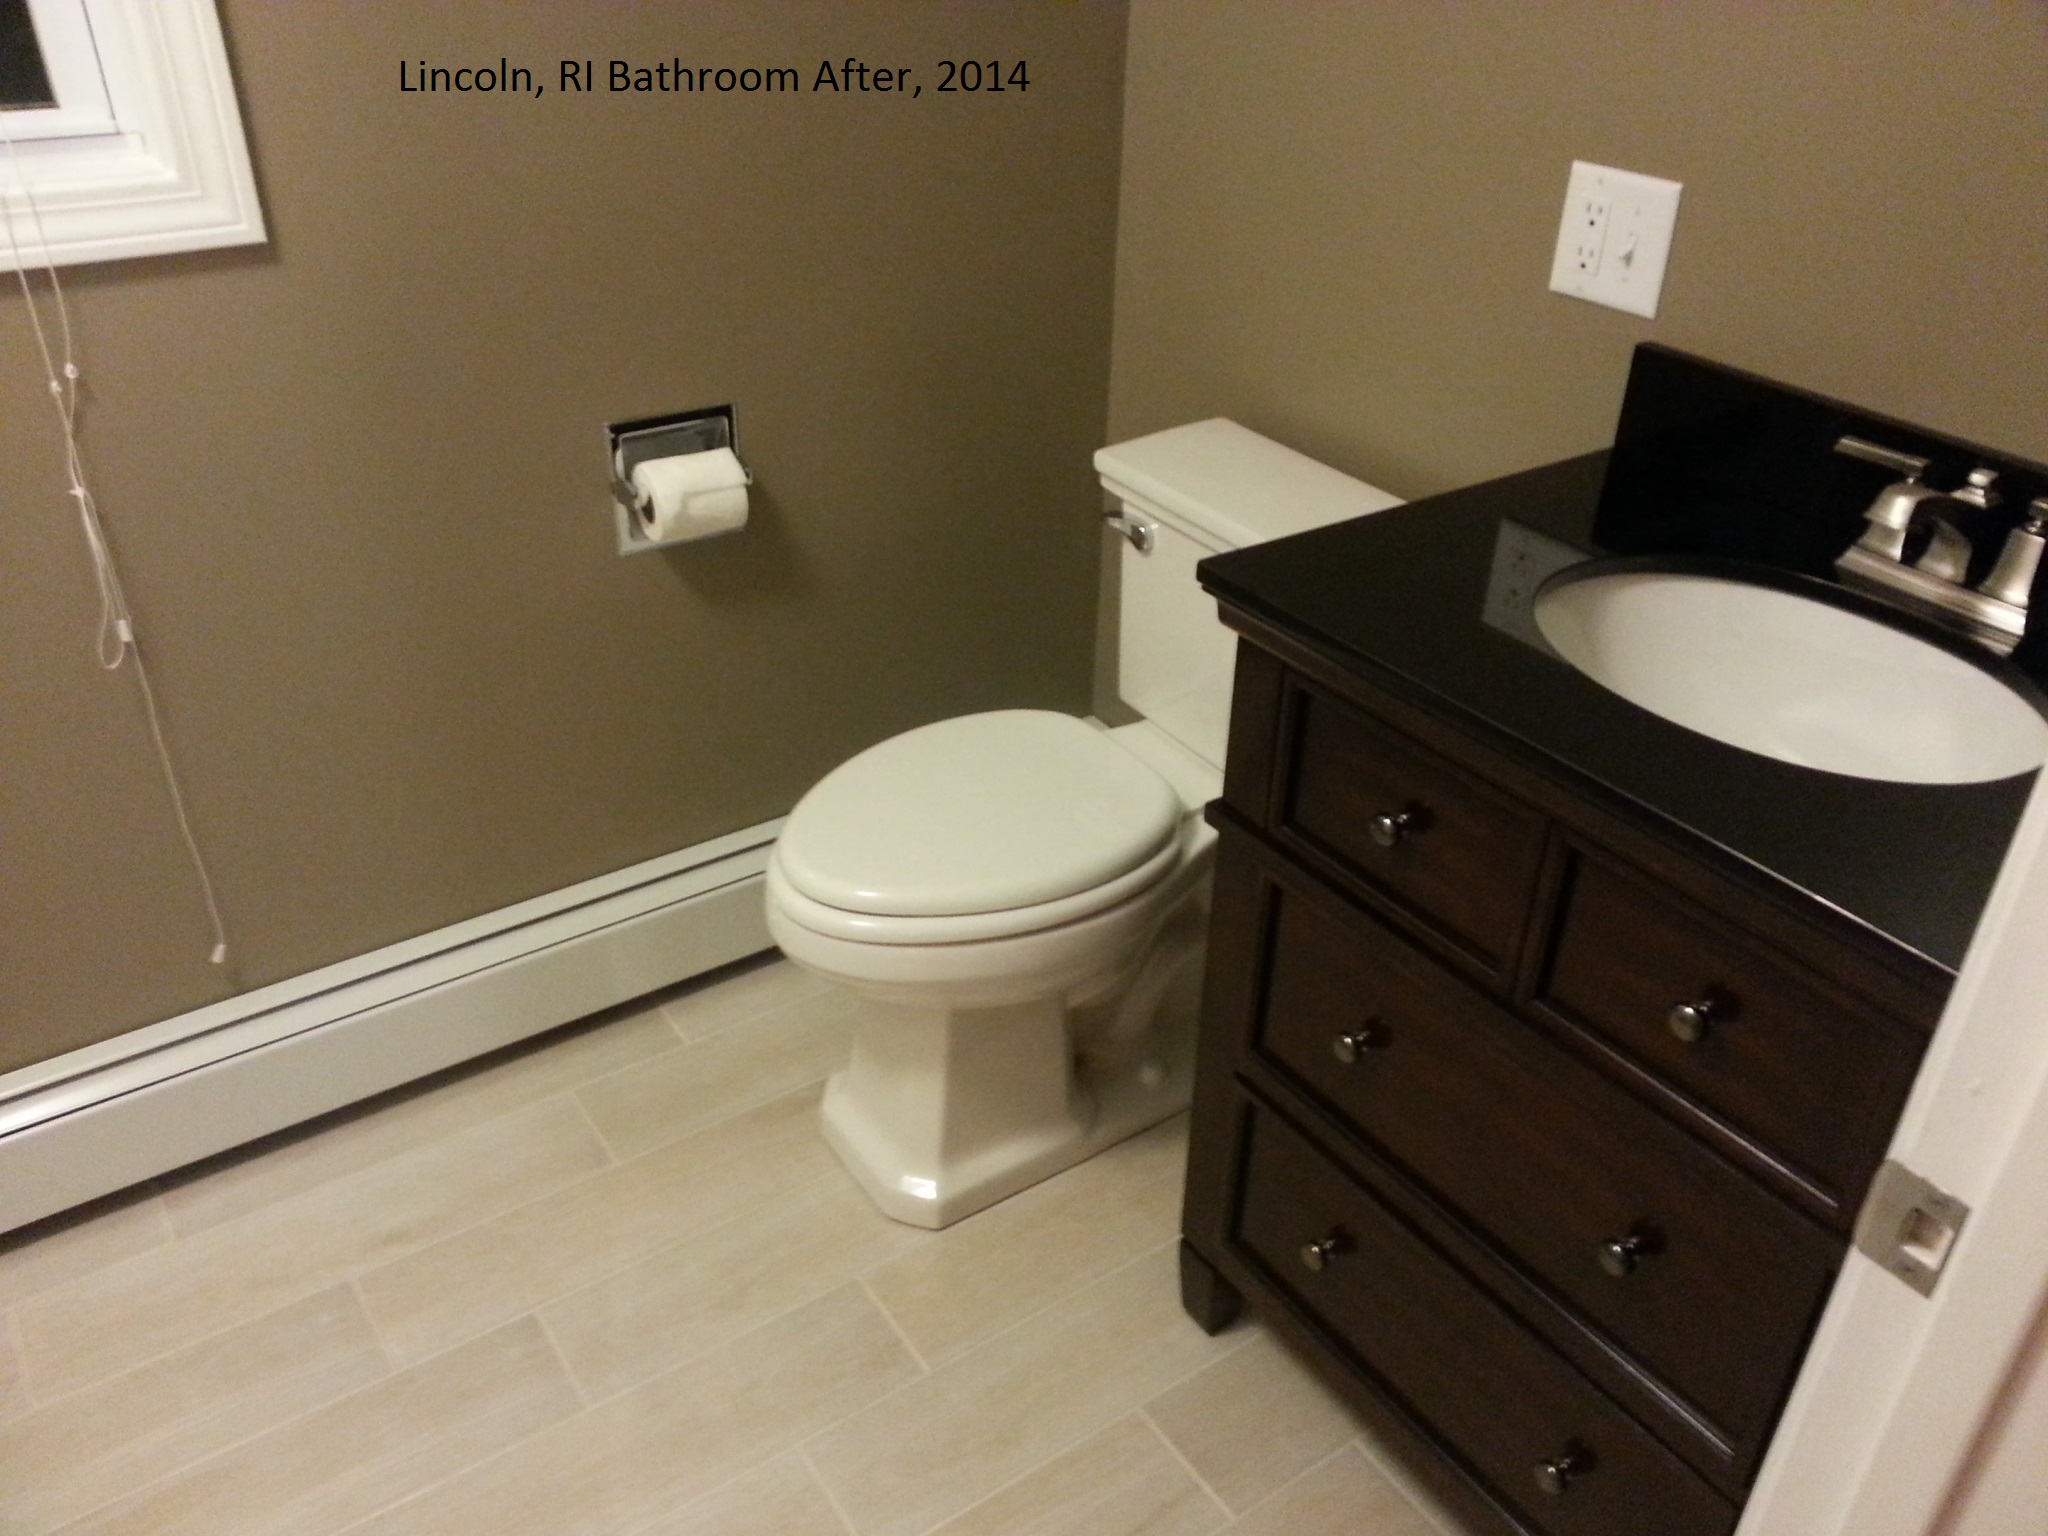 Titan Bathroom After, Lincoln 2014